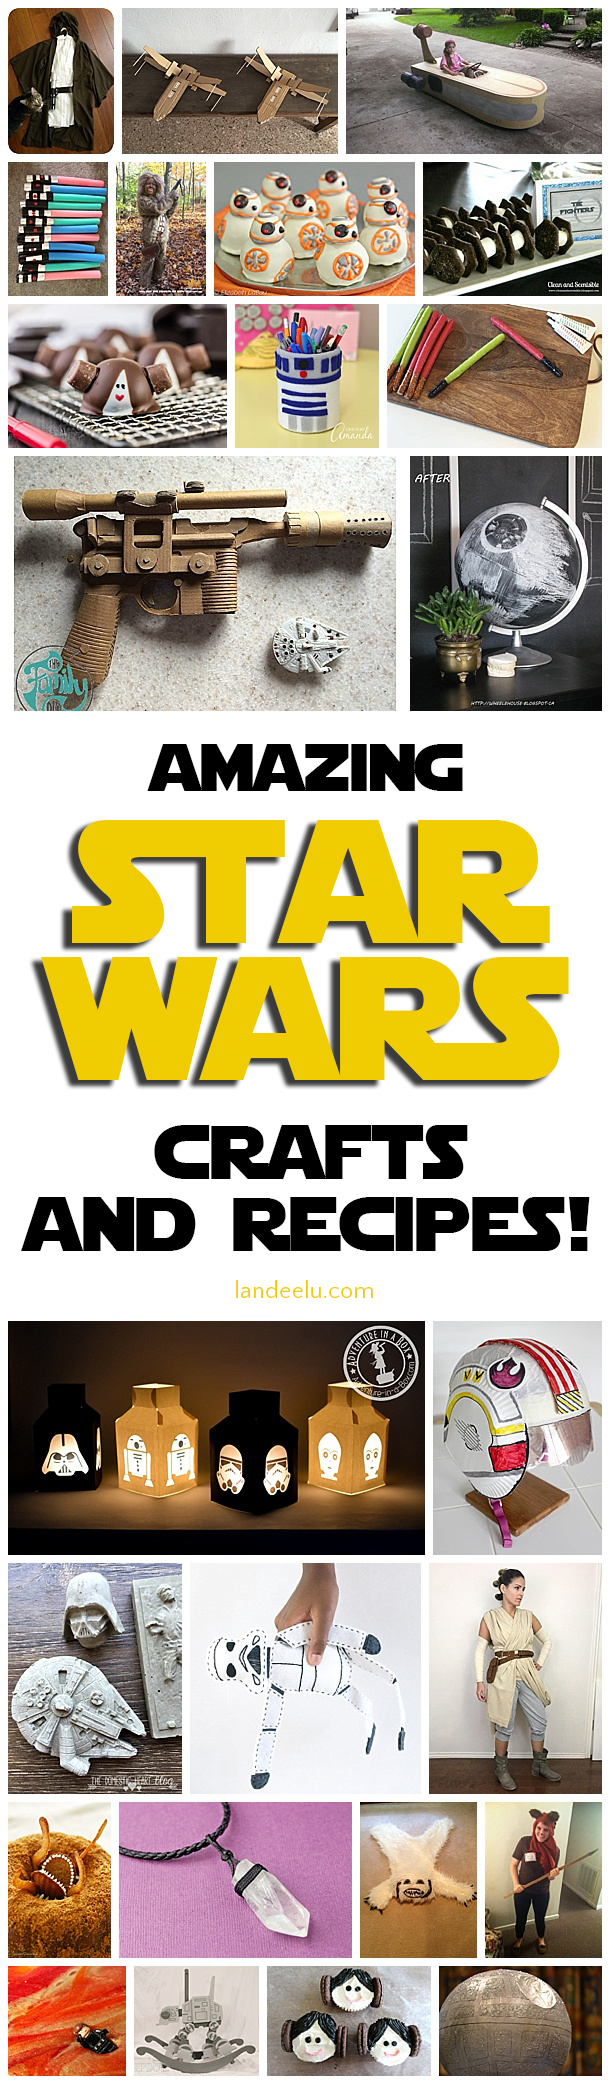 Awesome crafts and recipes to celebrate May the 4th in full blown Star Wars party mode! #starwars #starwarsparty #starwarscrafts #starwarsrecipes #birthdayparty #birthdaypartytheme #partyideas #partyfood #partycrafts